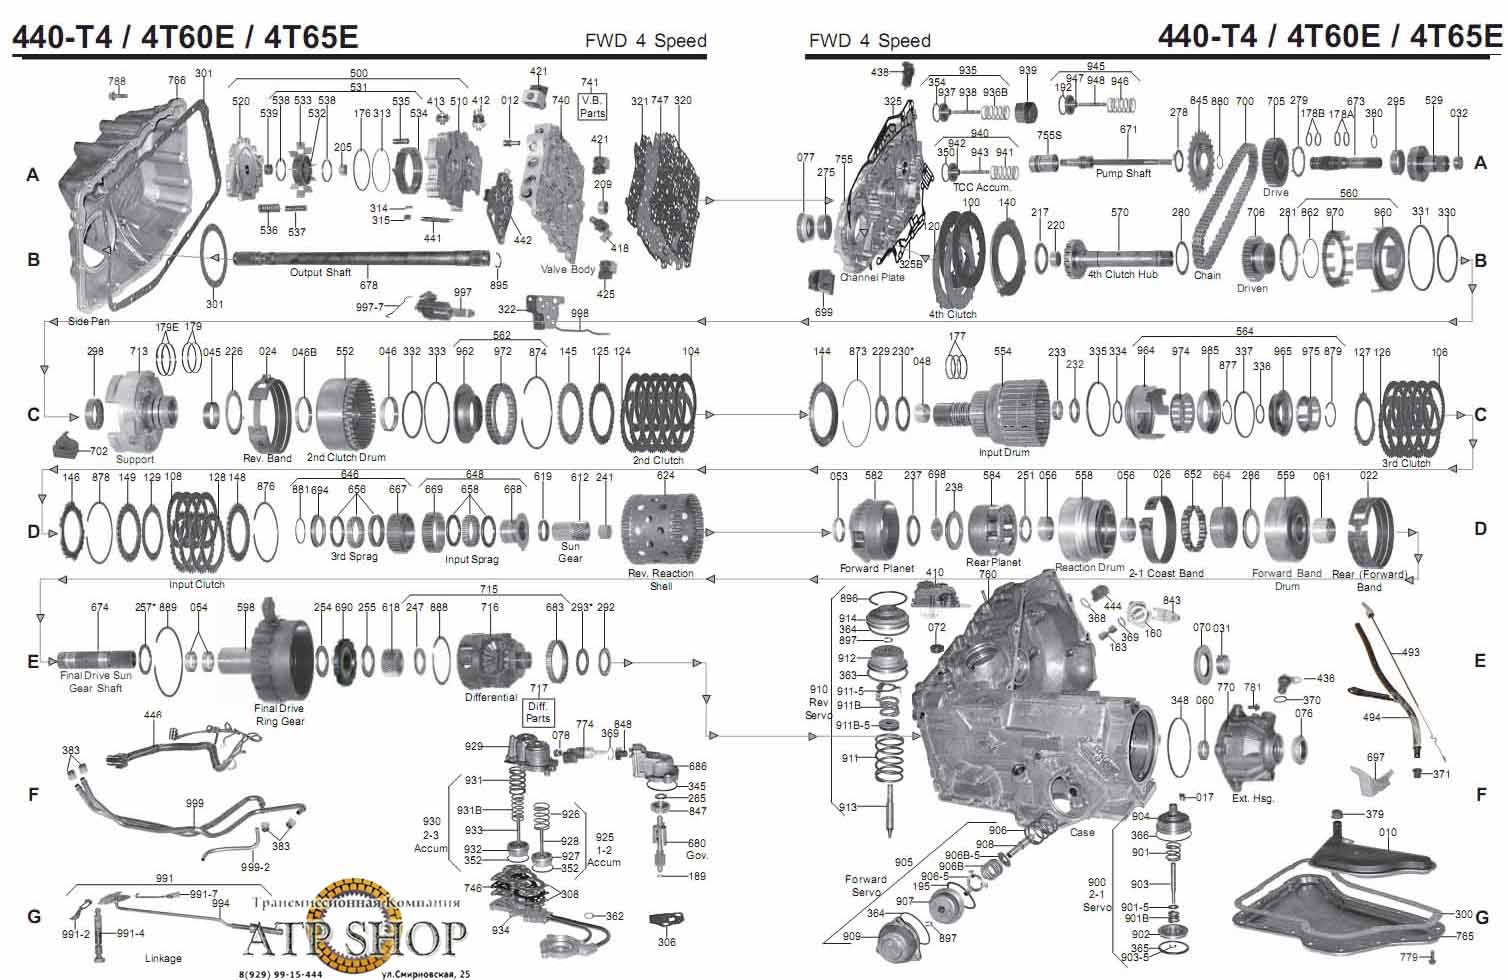 wiring diagram 4l60e transmission exploded view why transmission repairs for a gm 4t60e are a major headache! wiring diagram 4l60e automatic transmission parts